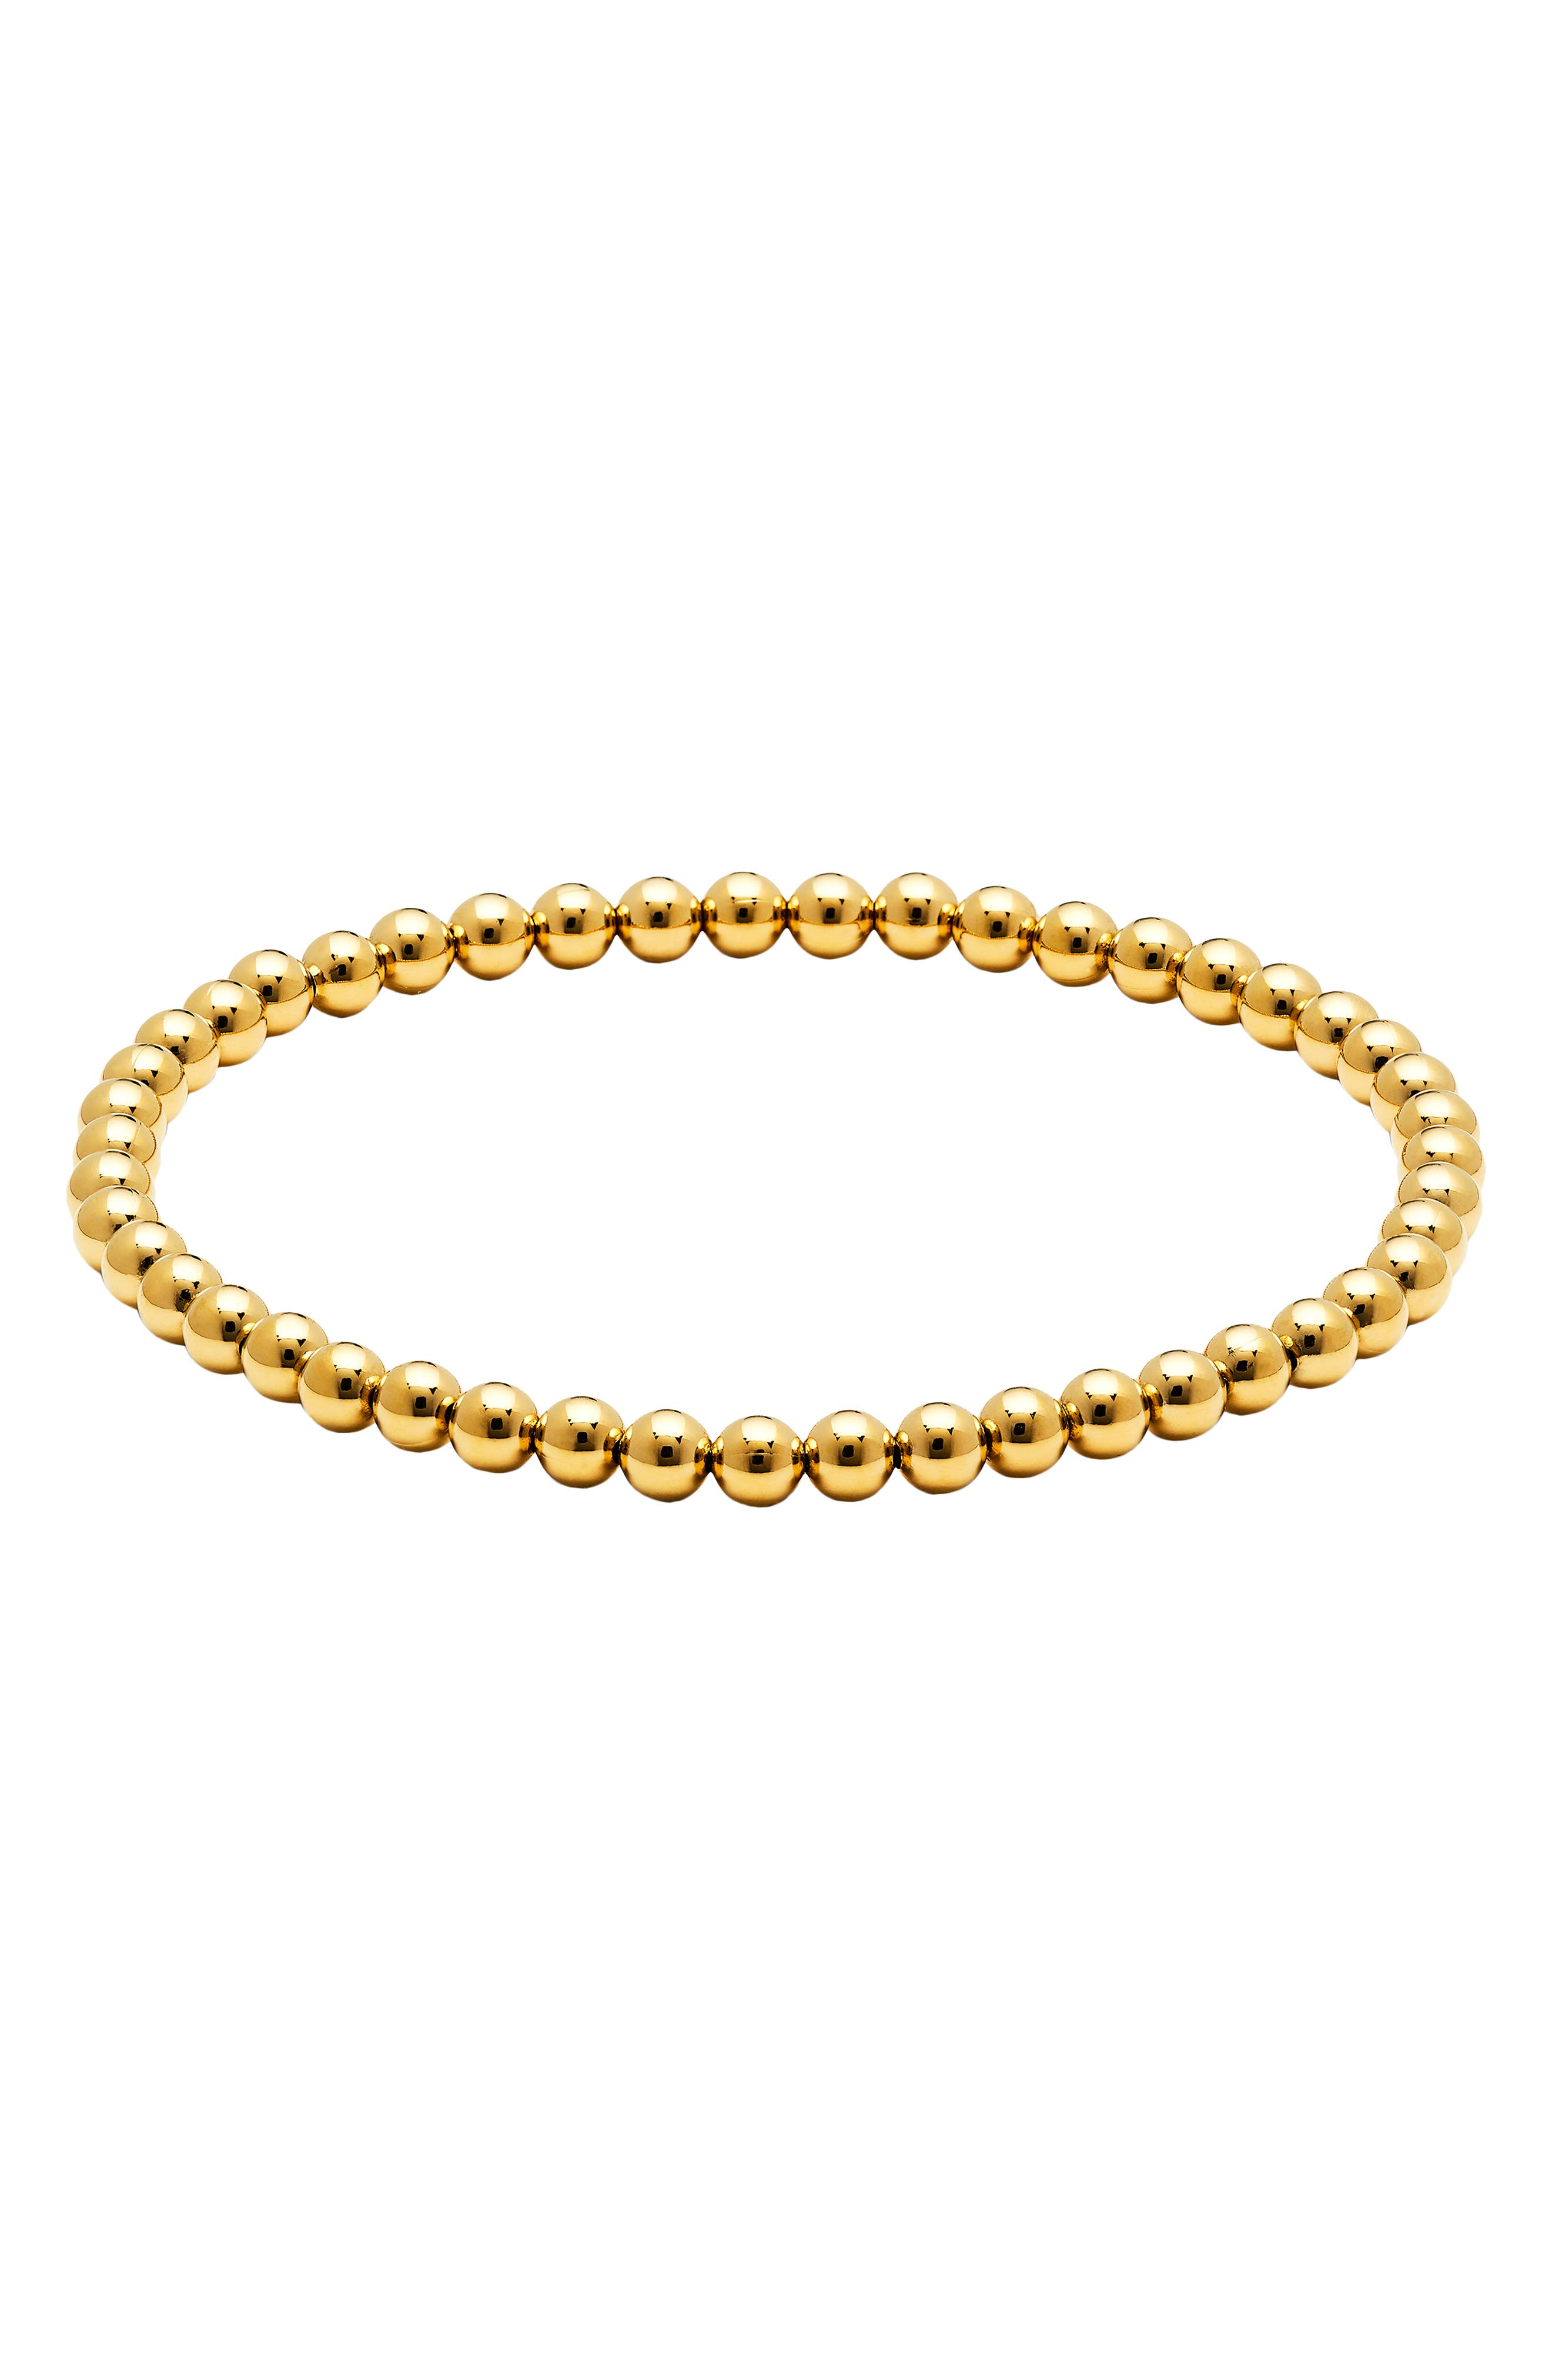 Image of AJOA FT LALA 4MM BEAD STRETCH B G